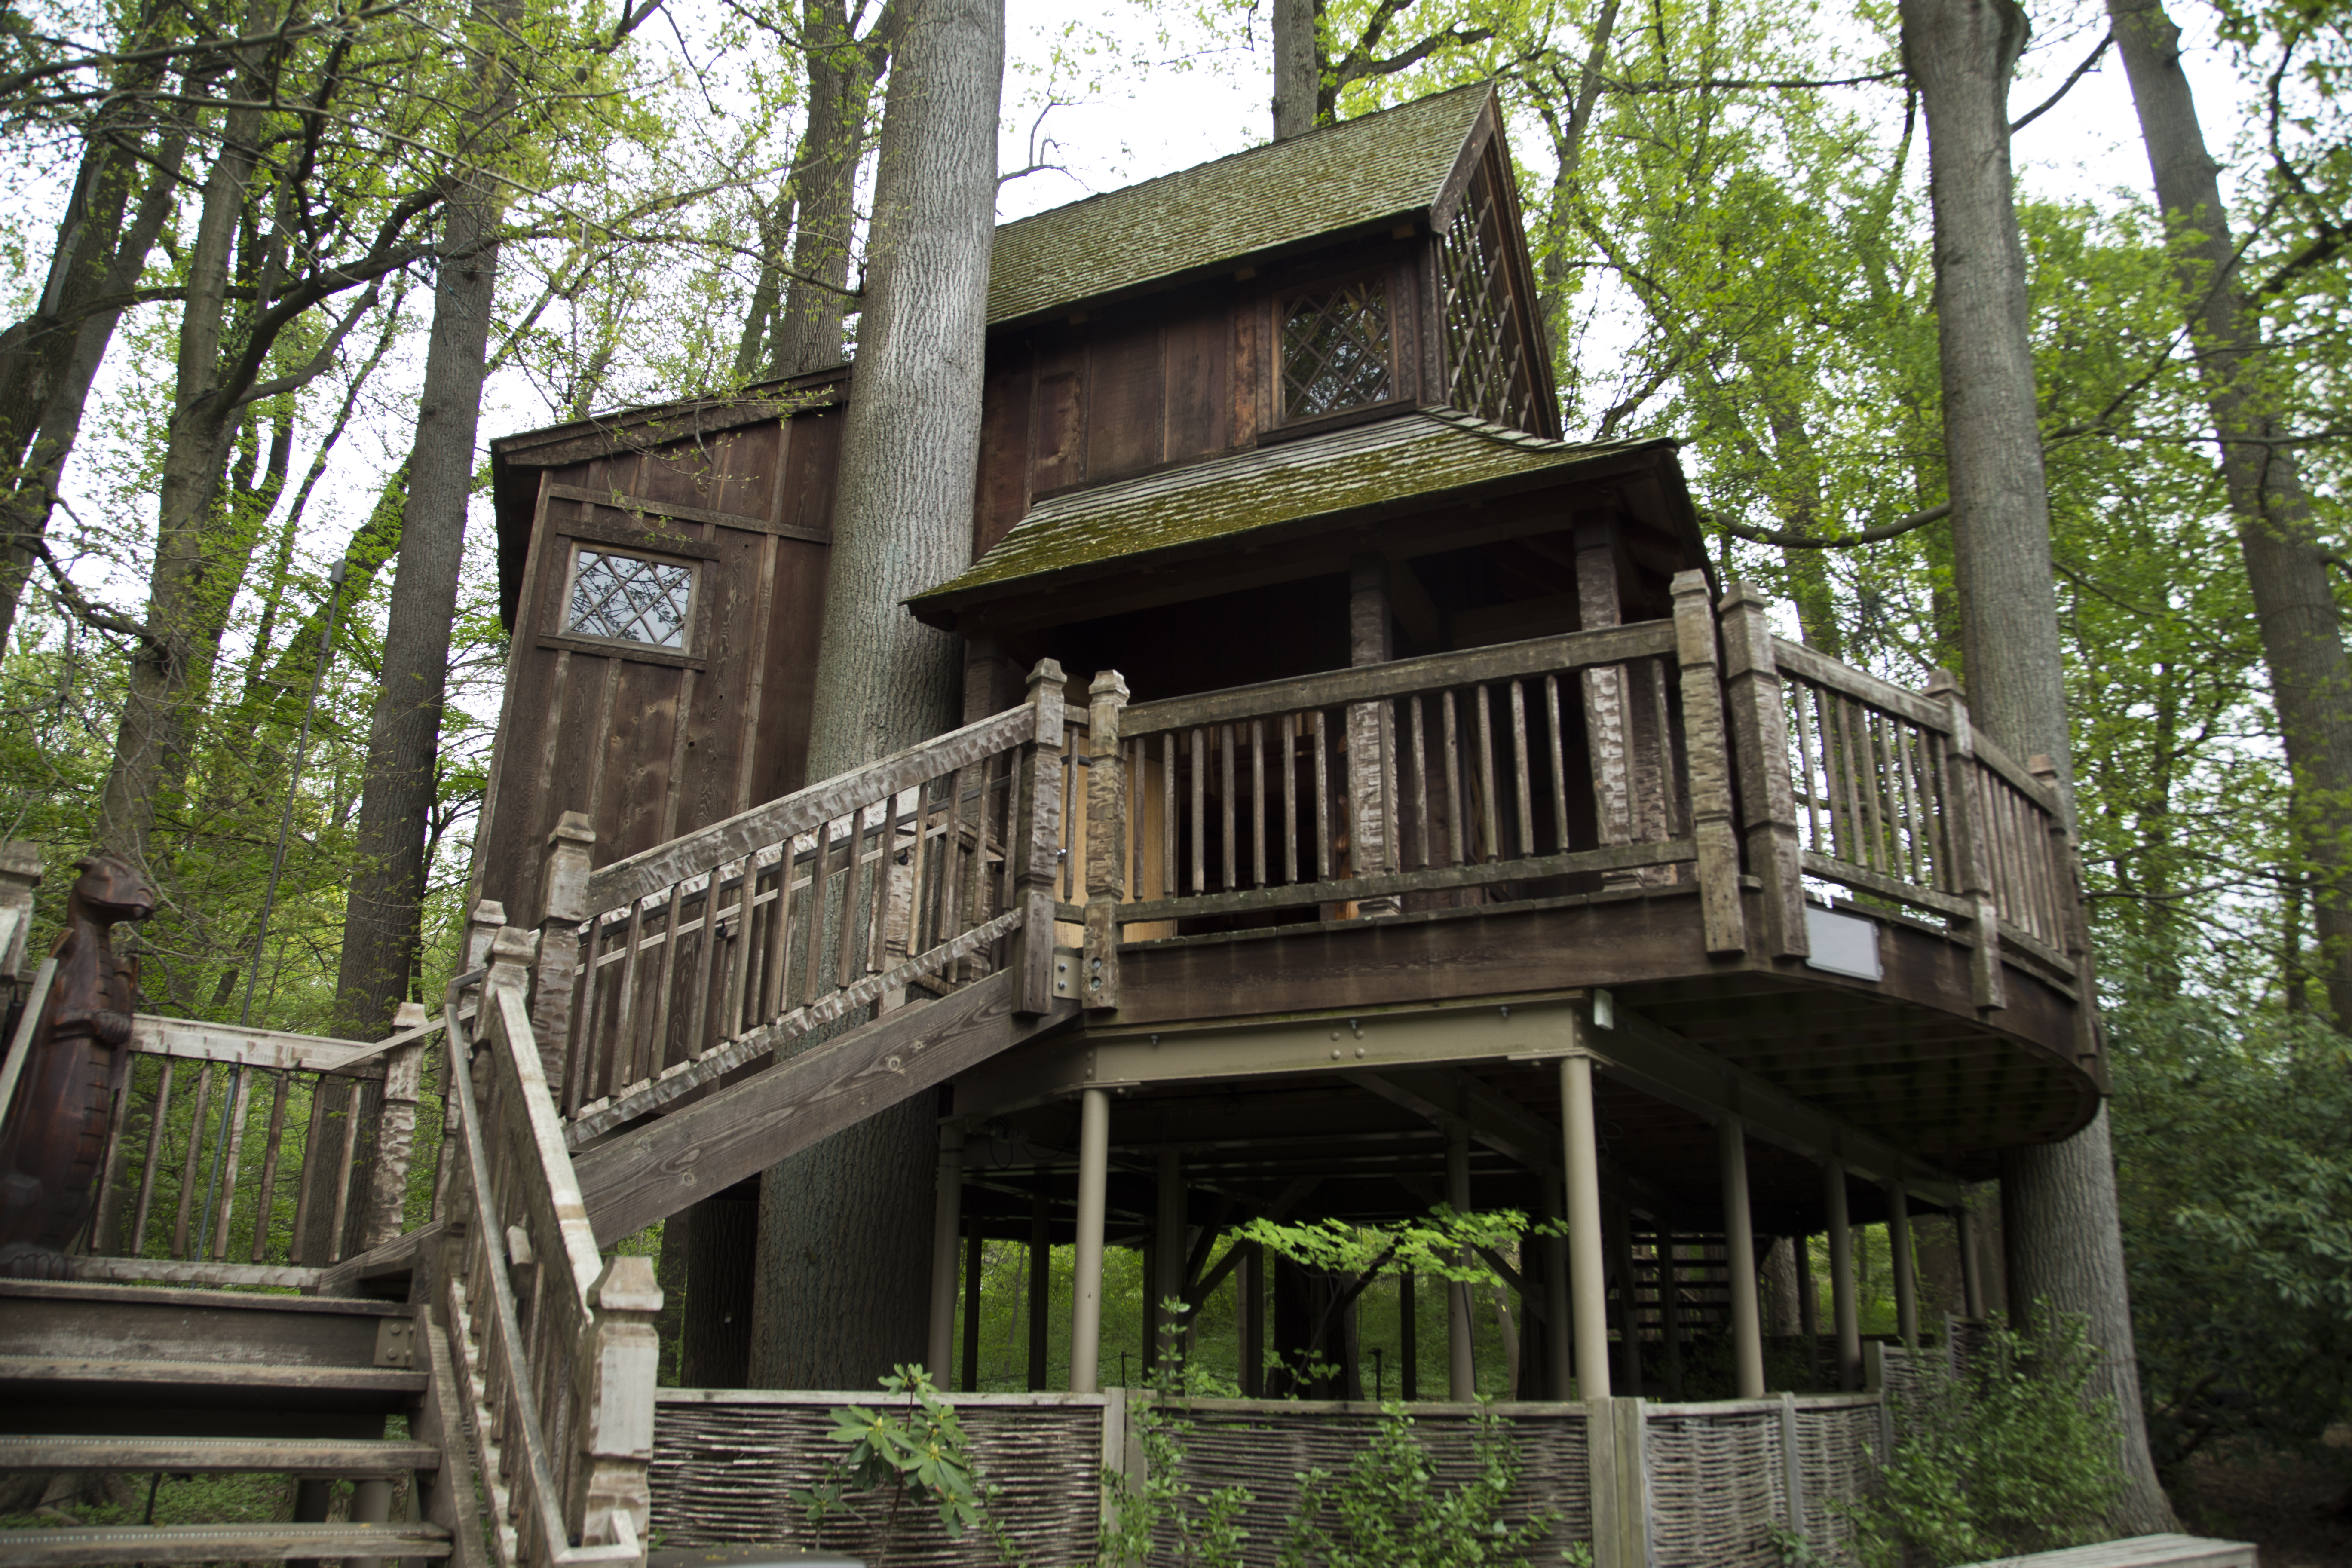 FileCanopy Cathedral treehouse.jpg & File:Canopy Cathedral treehouse.jpg - Wikimedia Commons